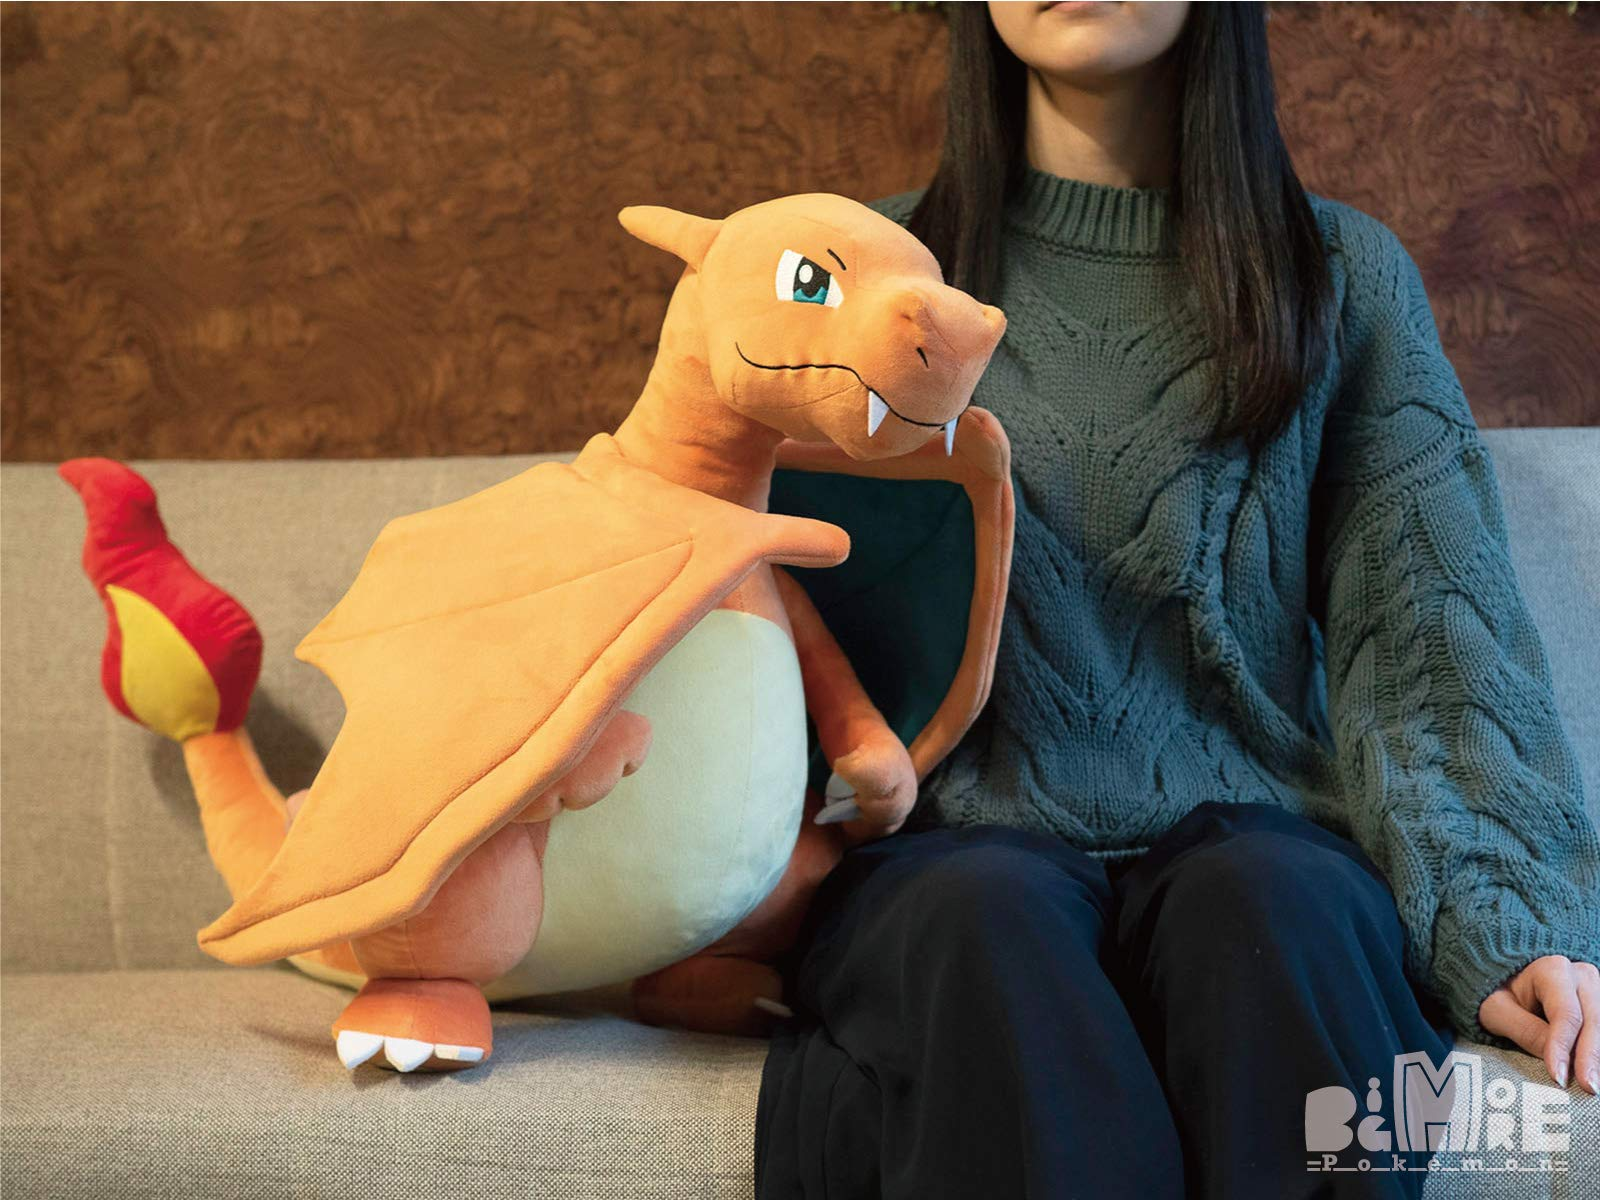 NEW Sanei Boeki Pokemon BigMore Charizard Plush Doll 49cm Stuffed Toy from Japan